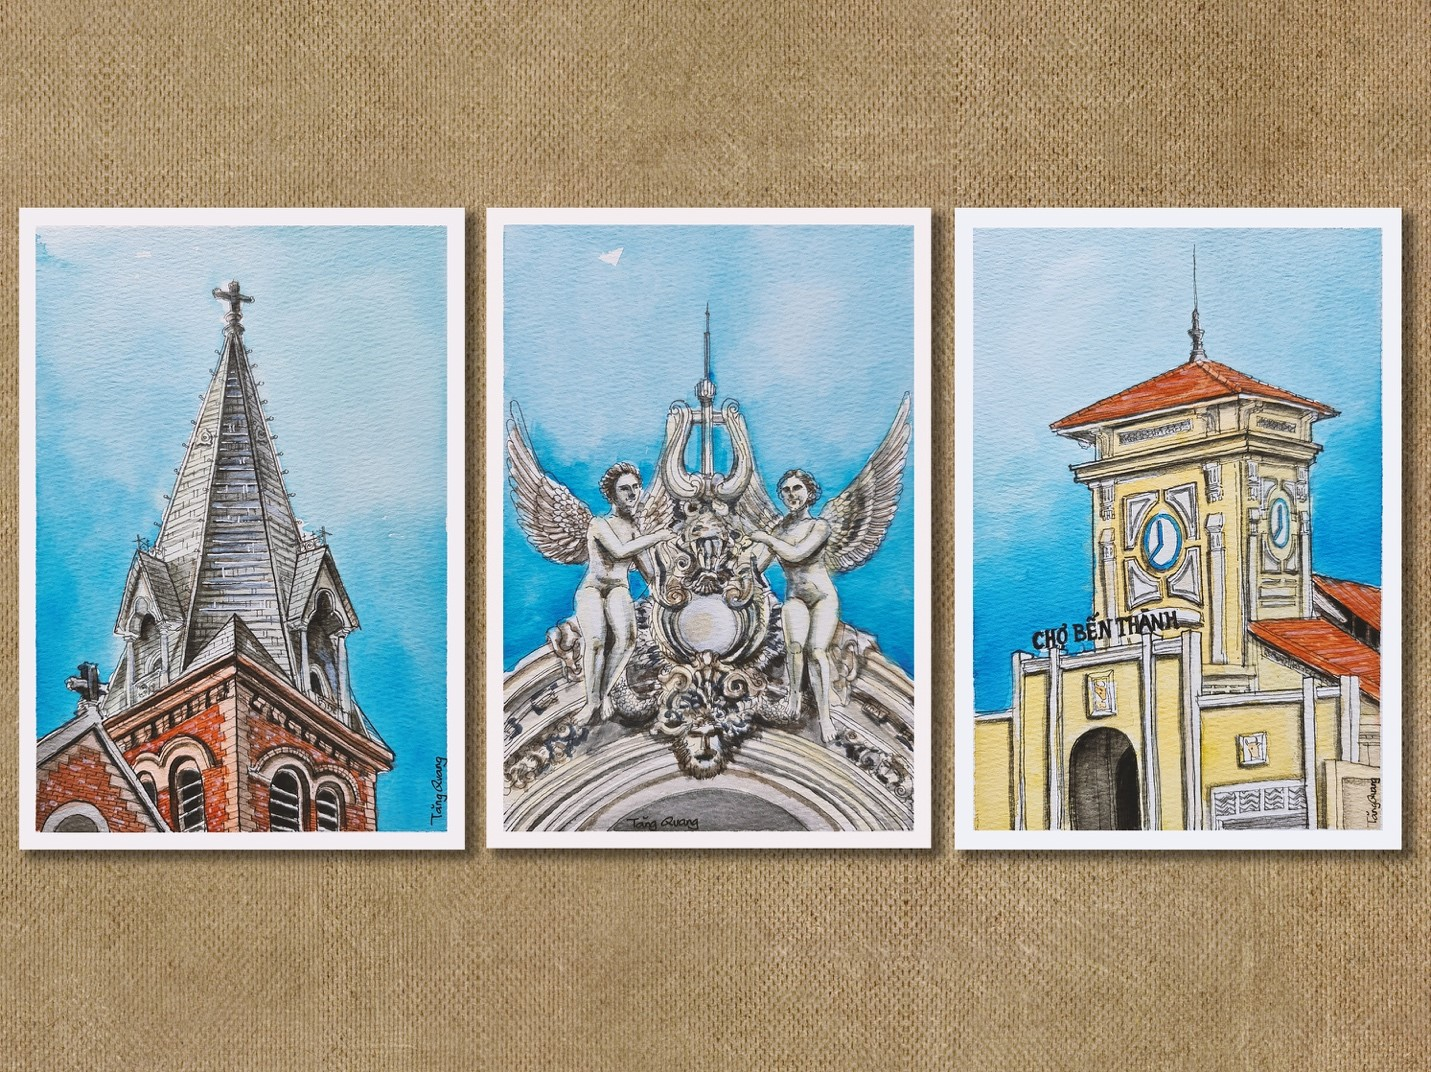 Drawings of famous architecture in Saigon. Photo: Tang Quang